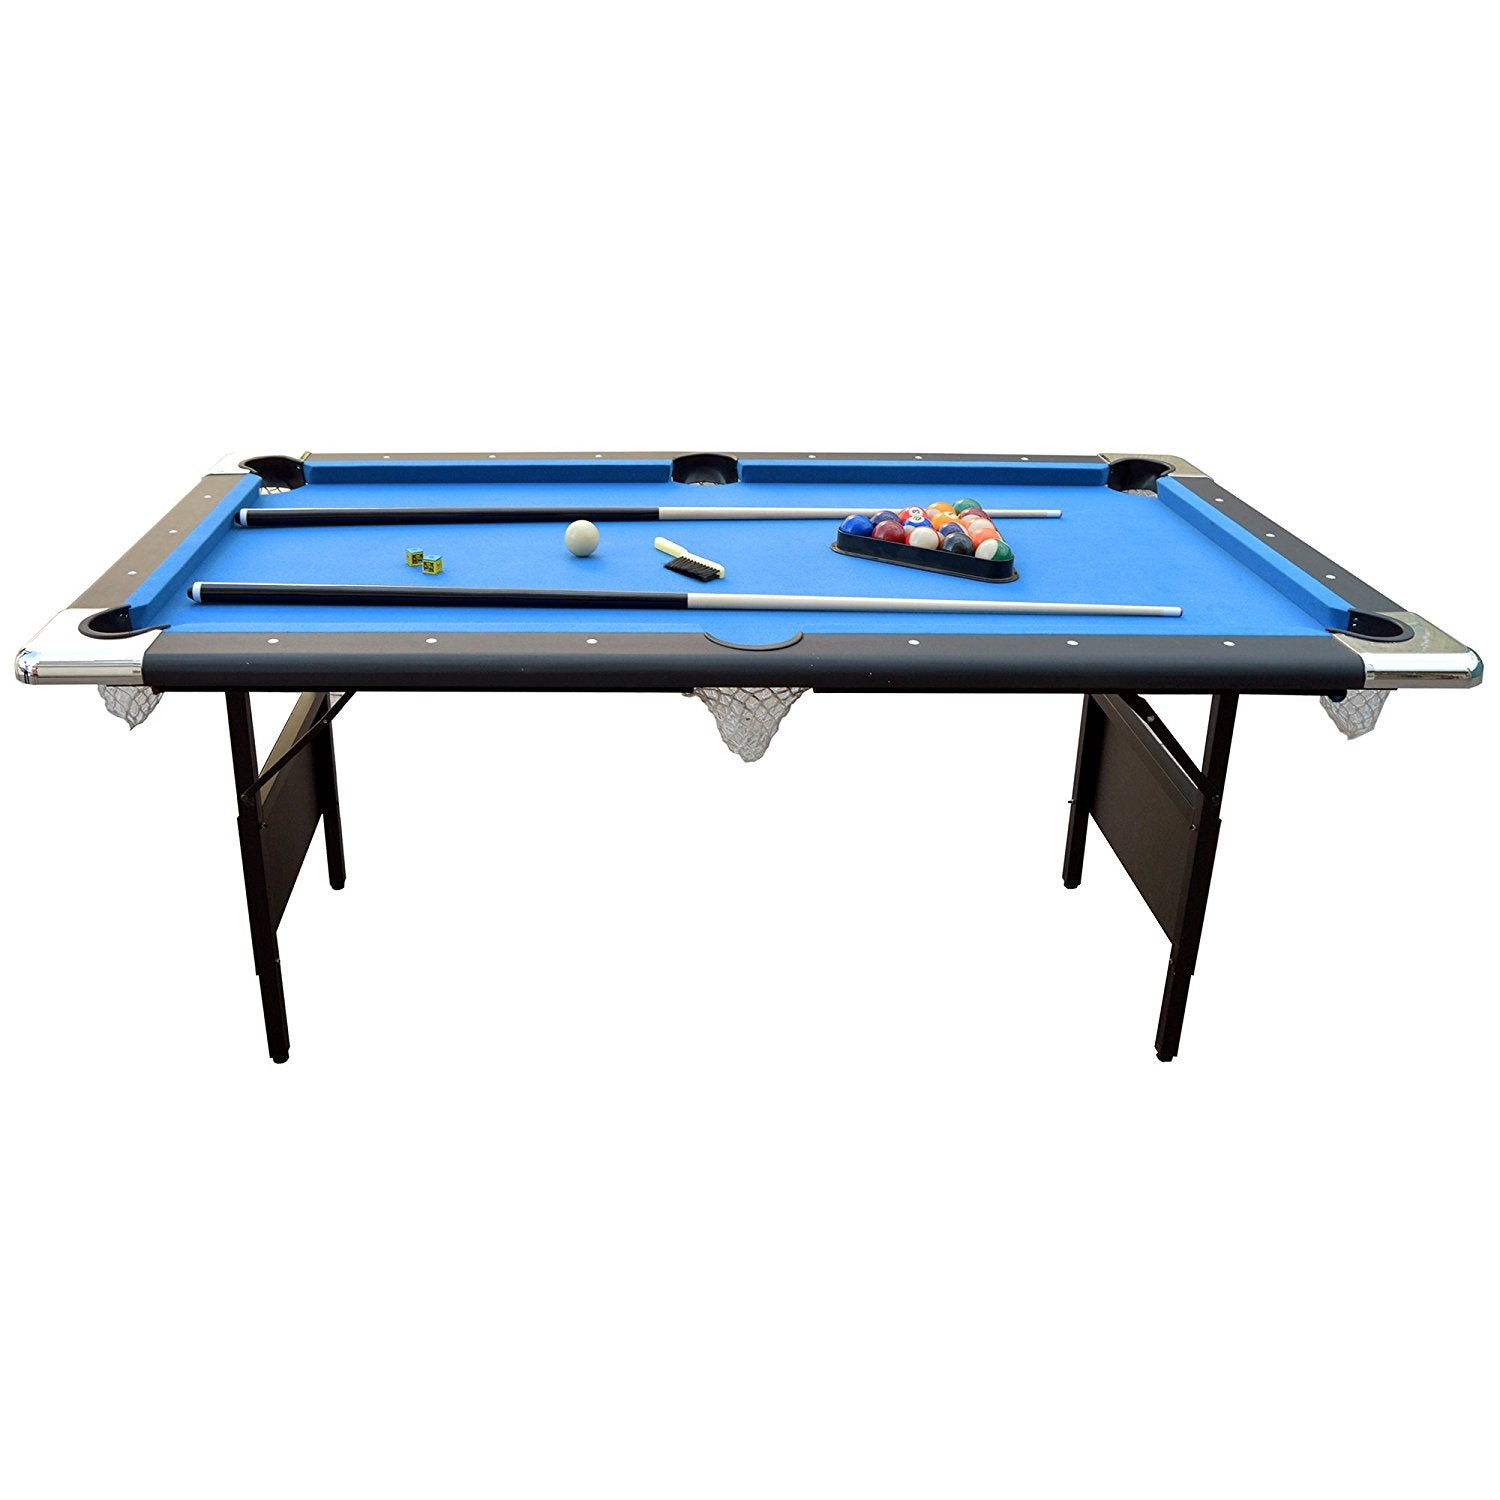 Portable 6 Ft Pool Table For Families With Easy Folding For Storage I Spencer Deals